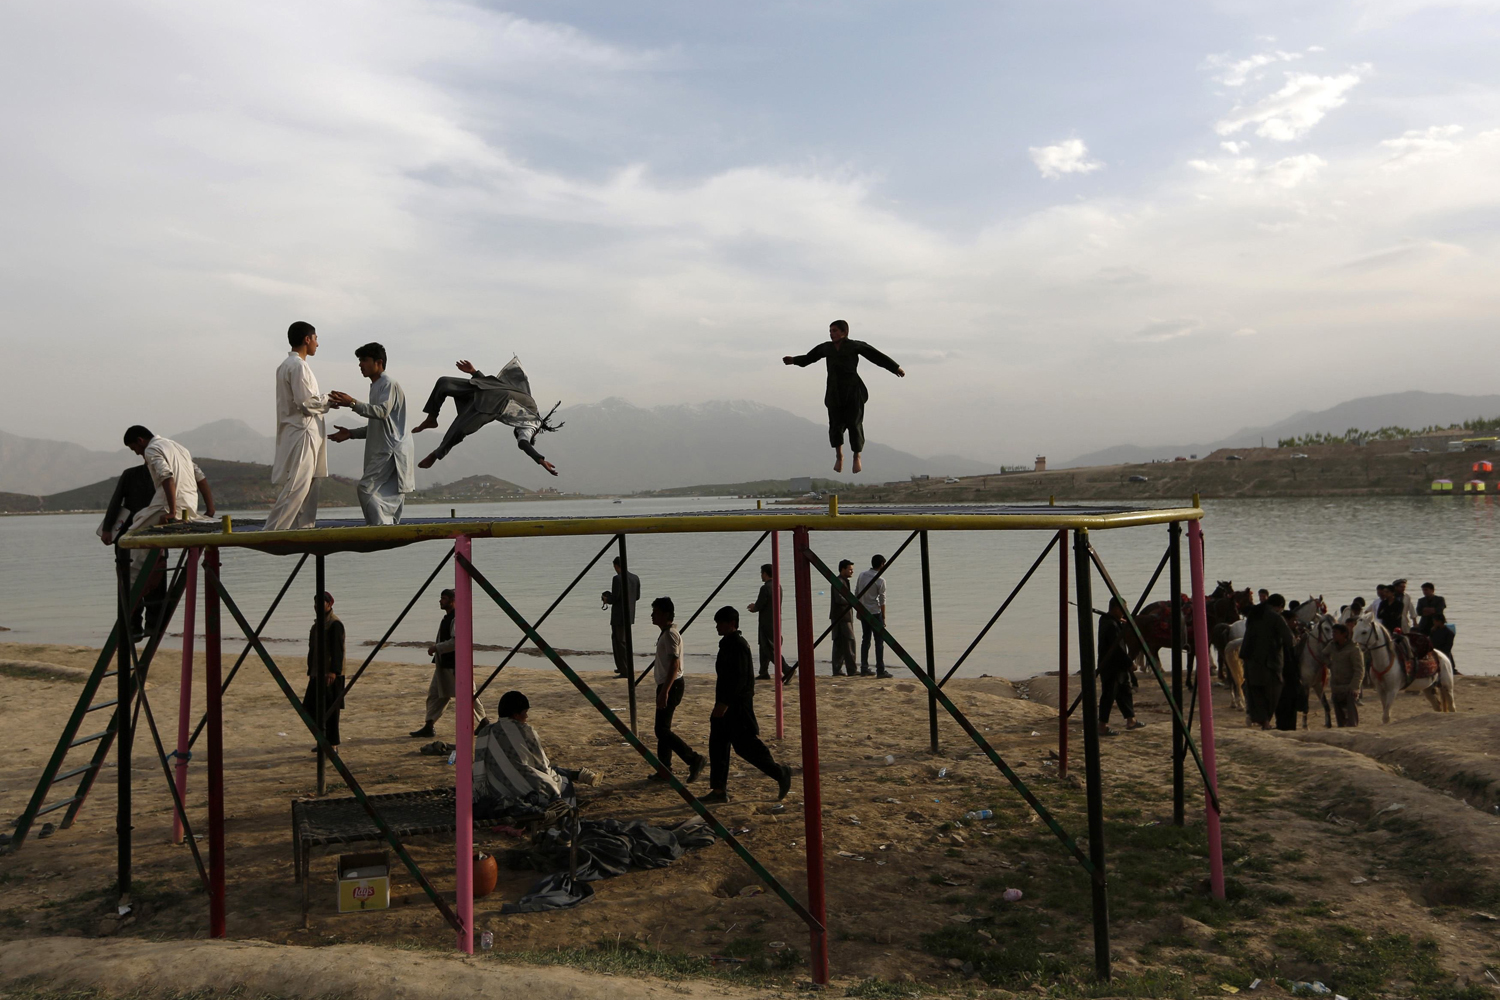 Afghans play on a trampoline along Qargha Lake, on the outskirts of Kabul on April 28, 2014.